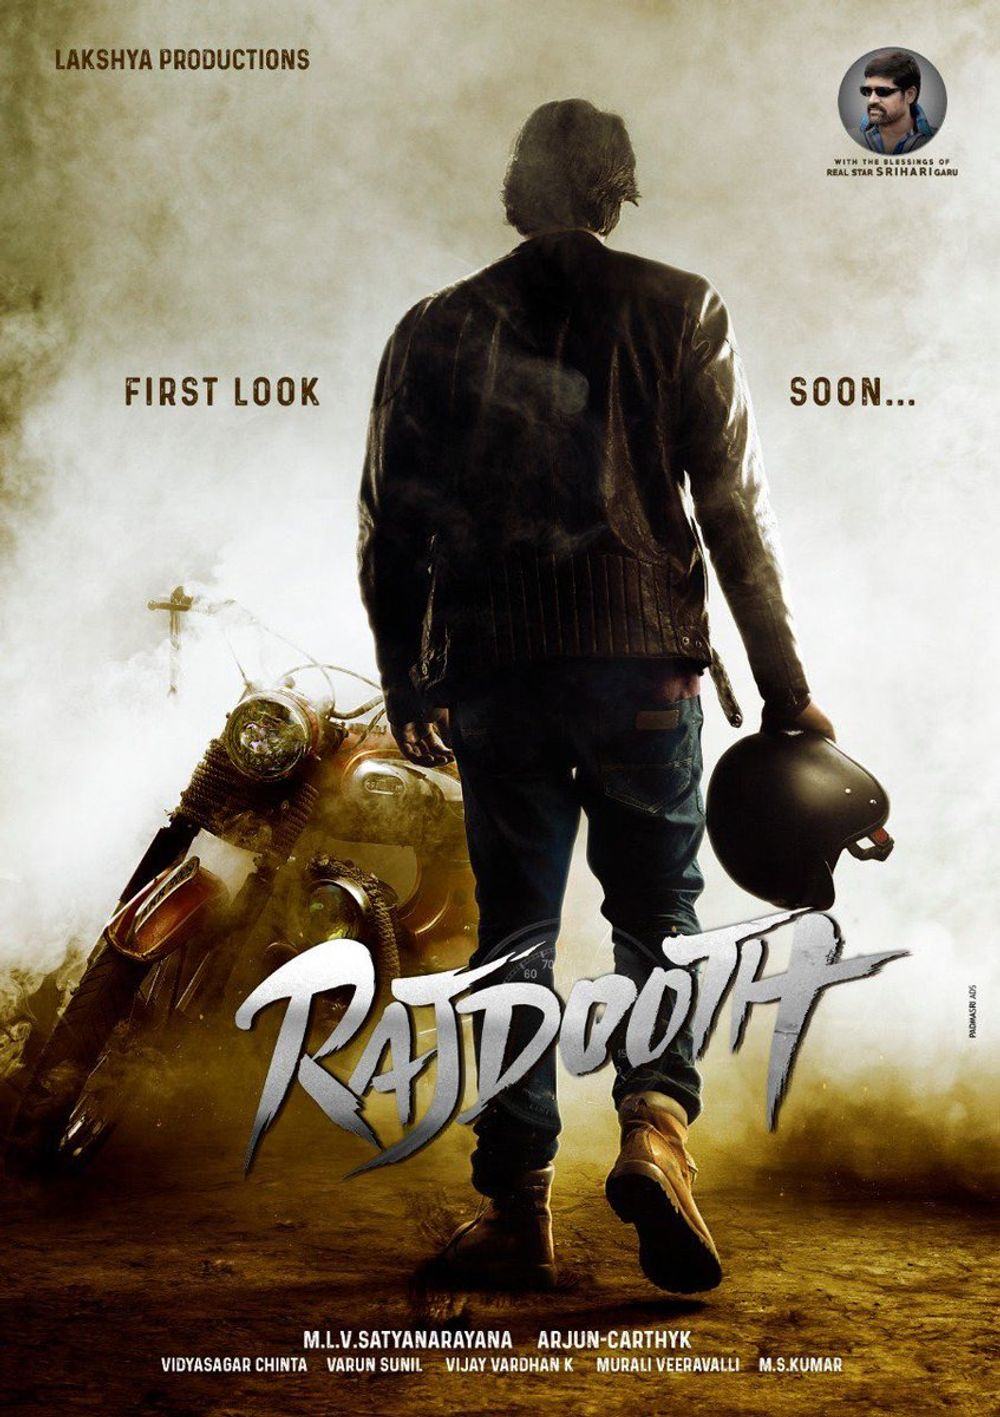 Rajdooth Movie Review Telugu Movie Review